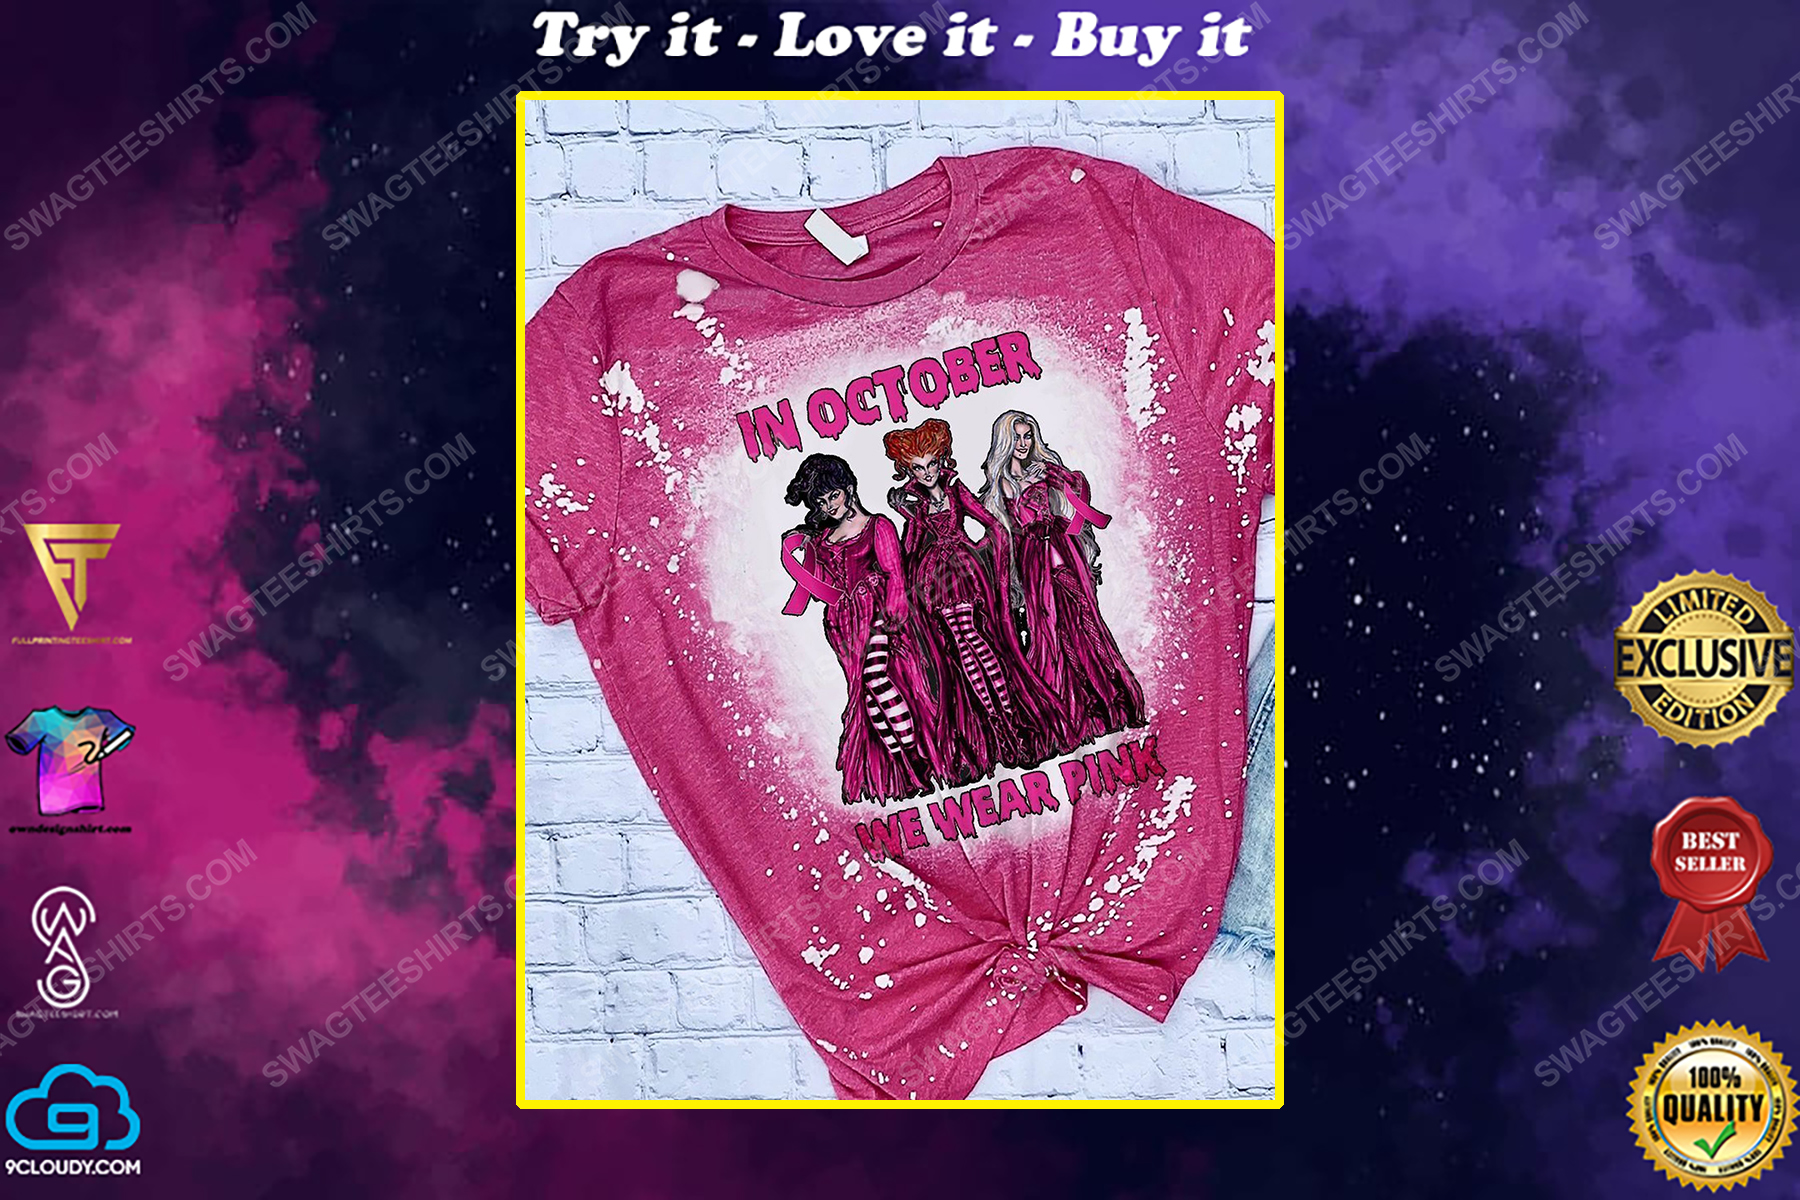 Breast cancer awareness in october we wear pink hocus pocus bleached shirt